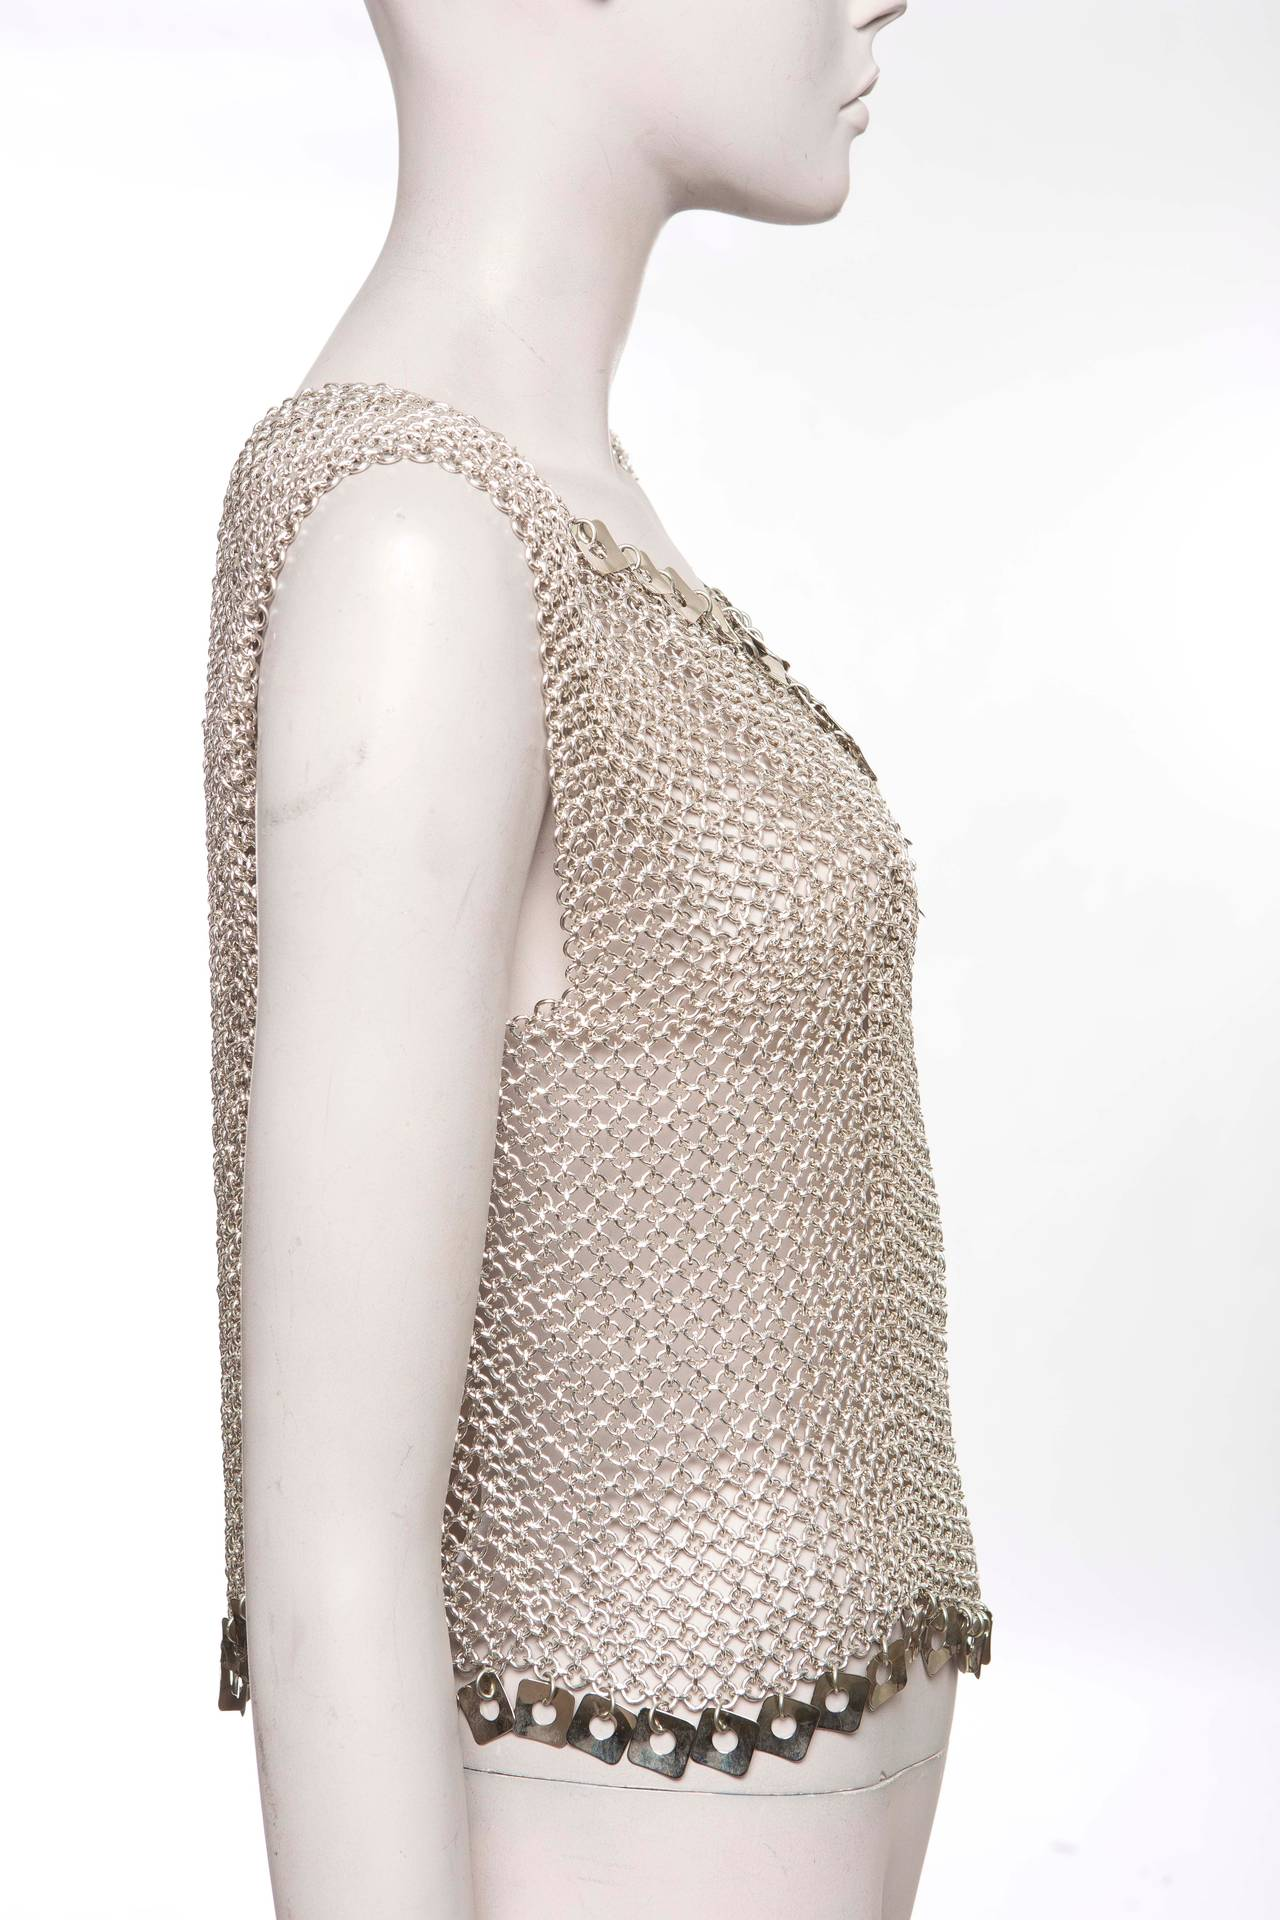 Paco Rabanne Chain Mail Top, Circa 1970's In Good Condition For Sale In Cincinnati, OH